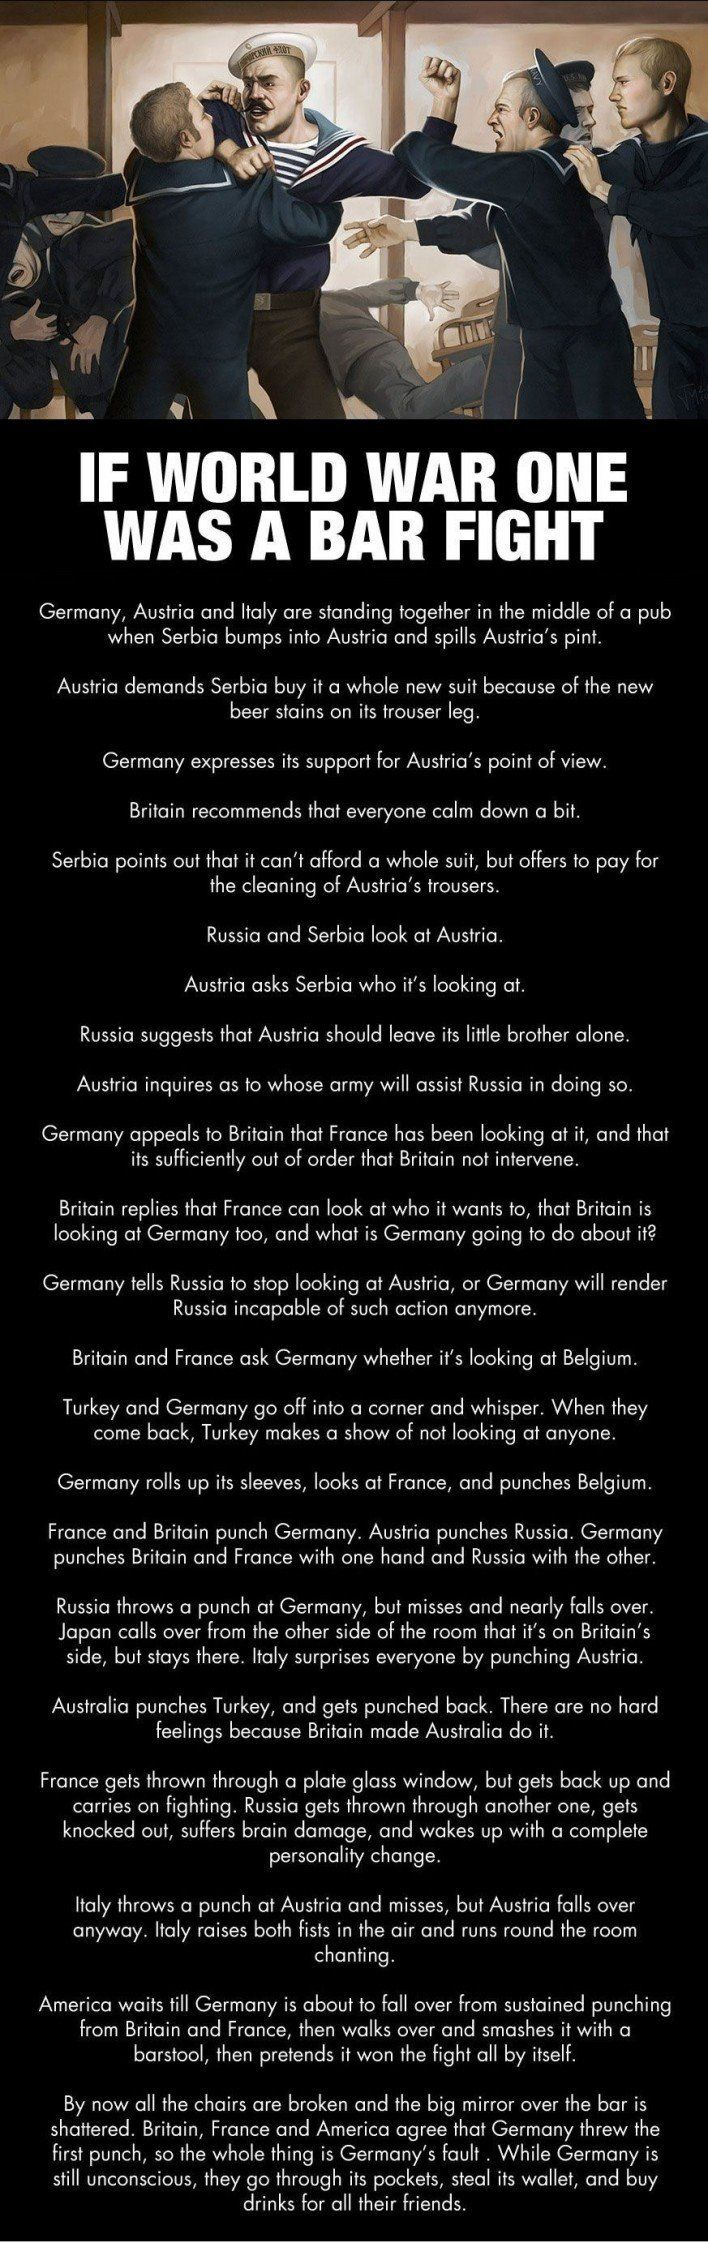 I don't know enough about war history to accept or doubt the accuracy of this story but it's funny enough anyway!